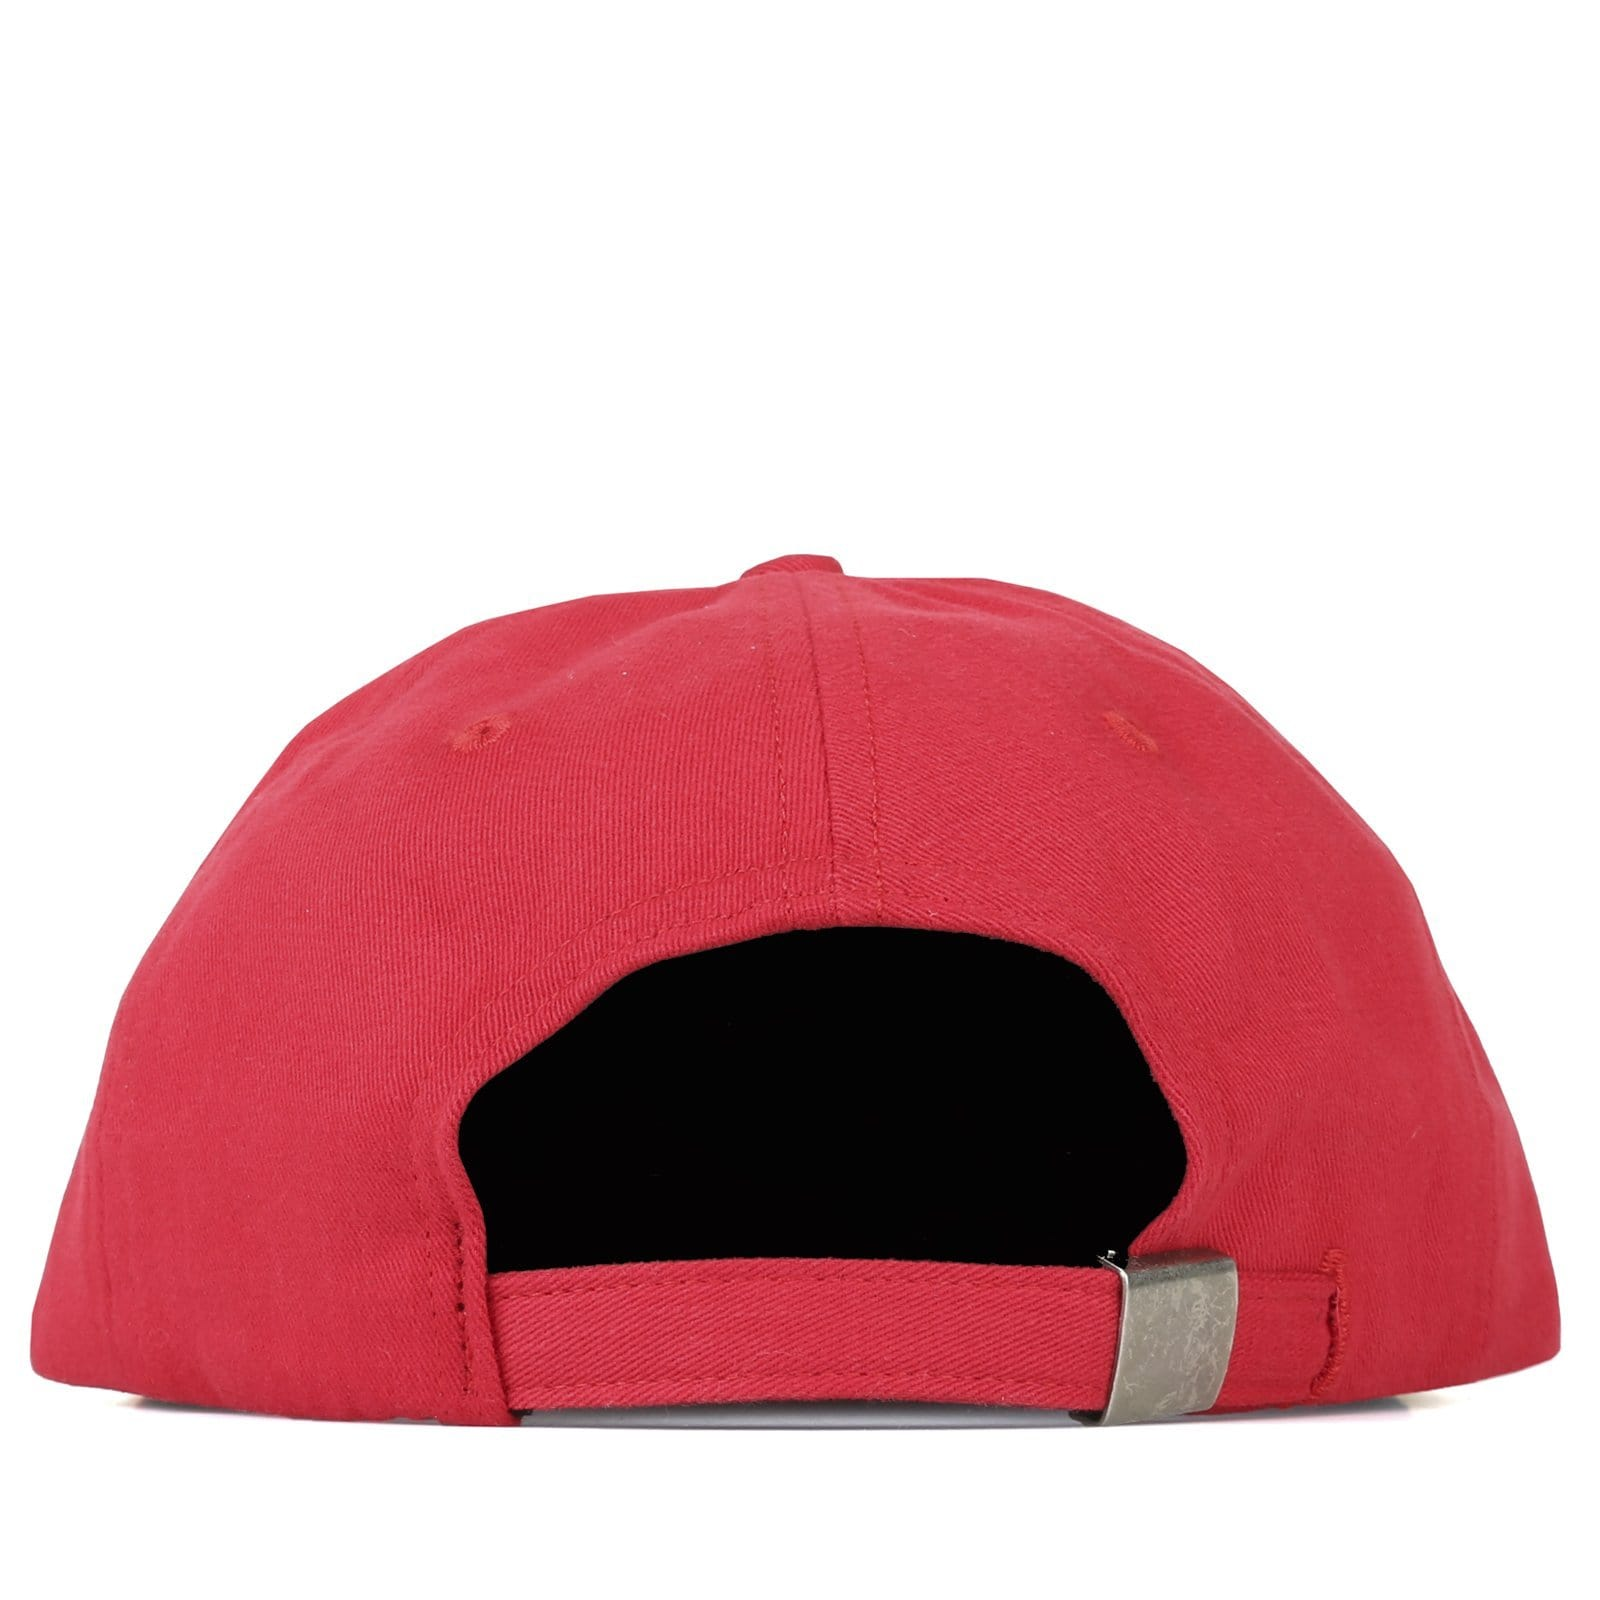 By Parra 6 PANEL HAT STOMP Red